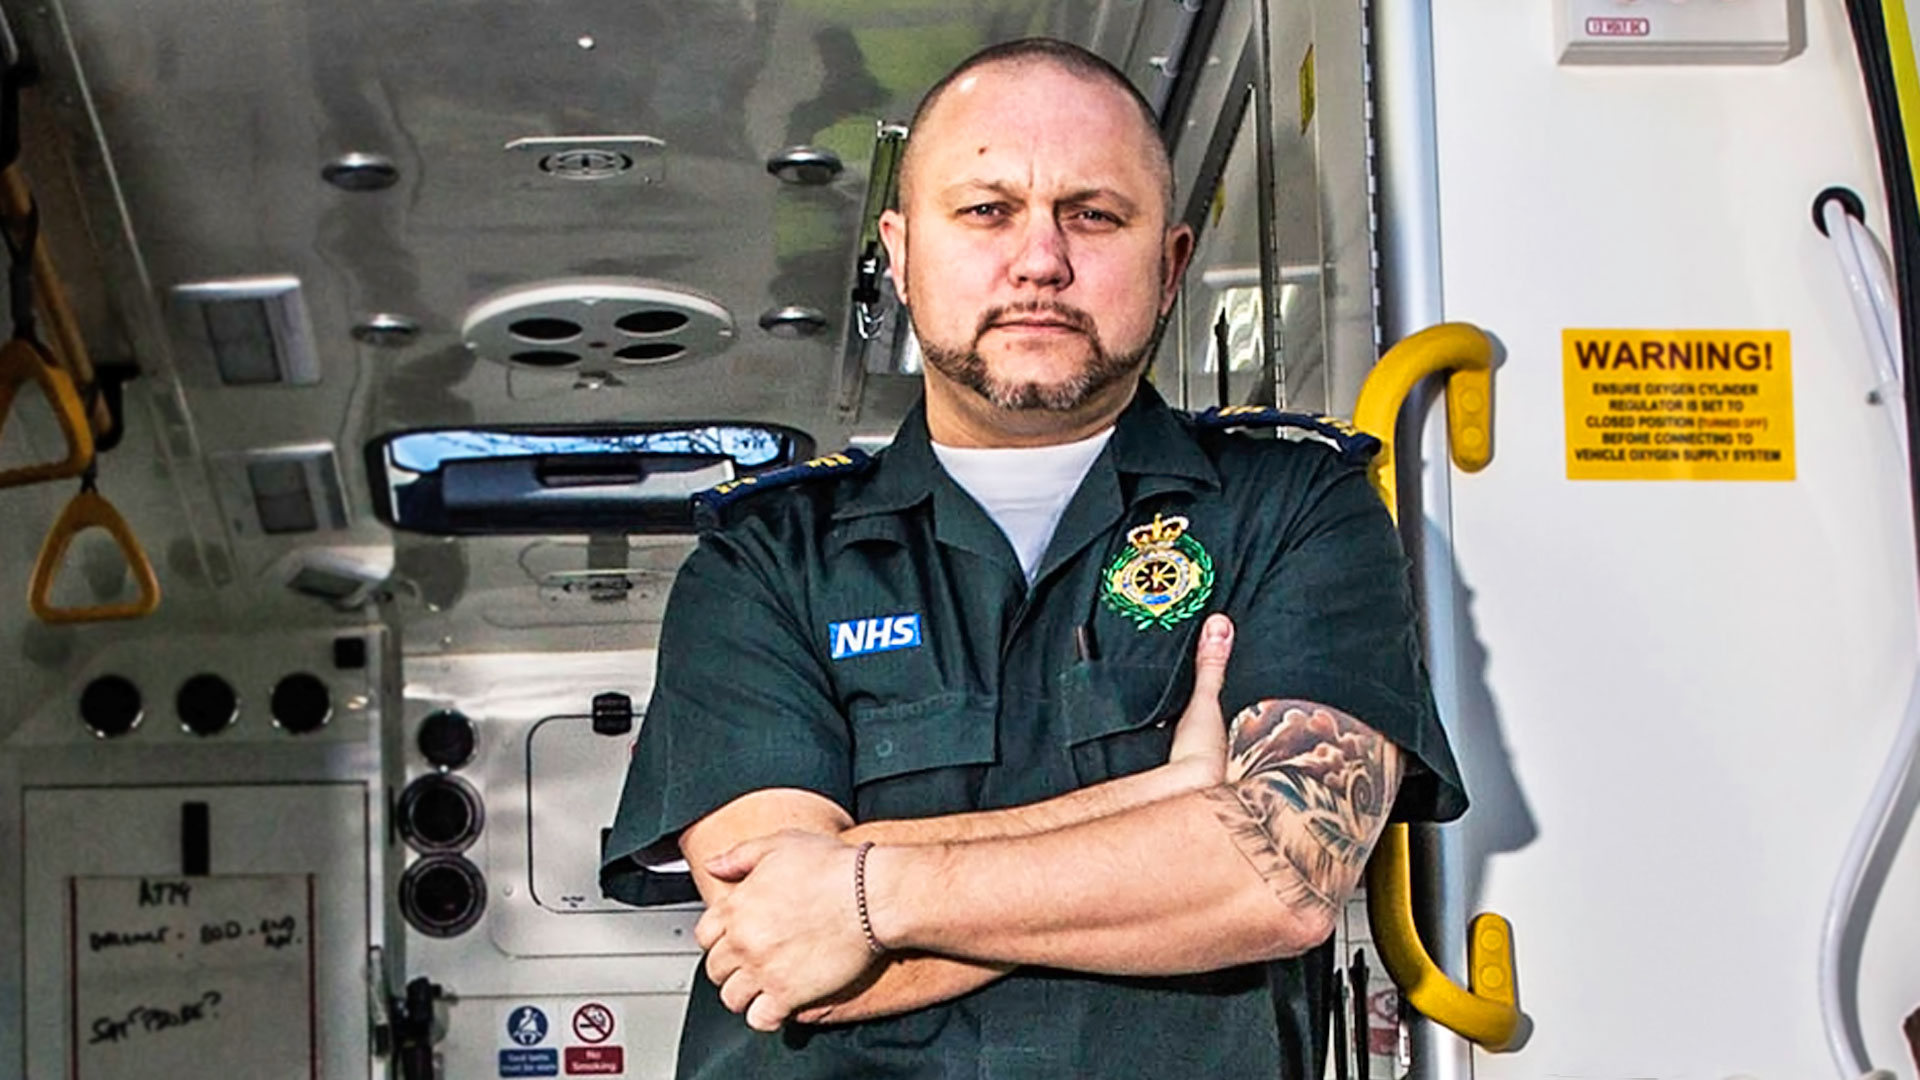 999: What's Your Emergency?